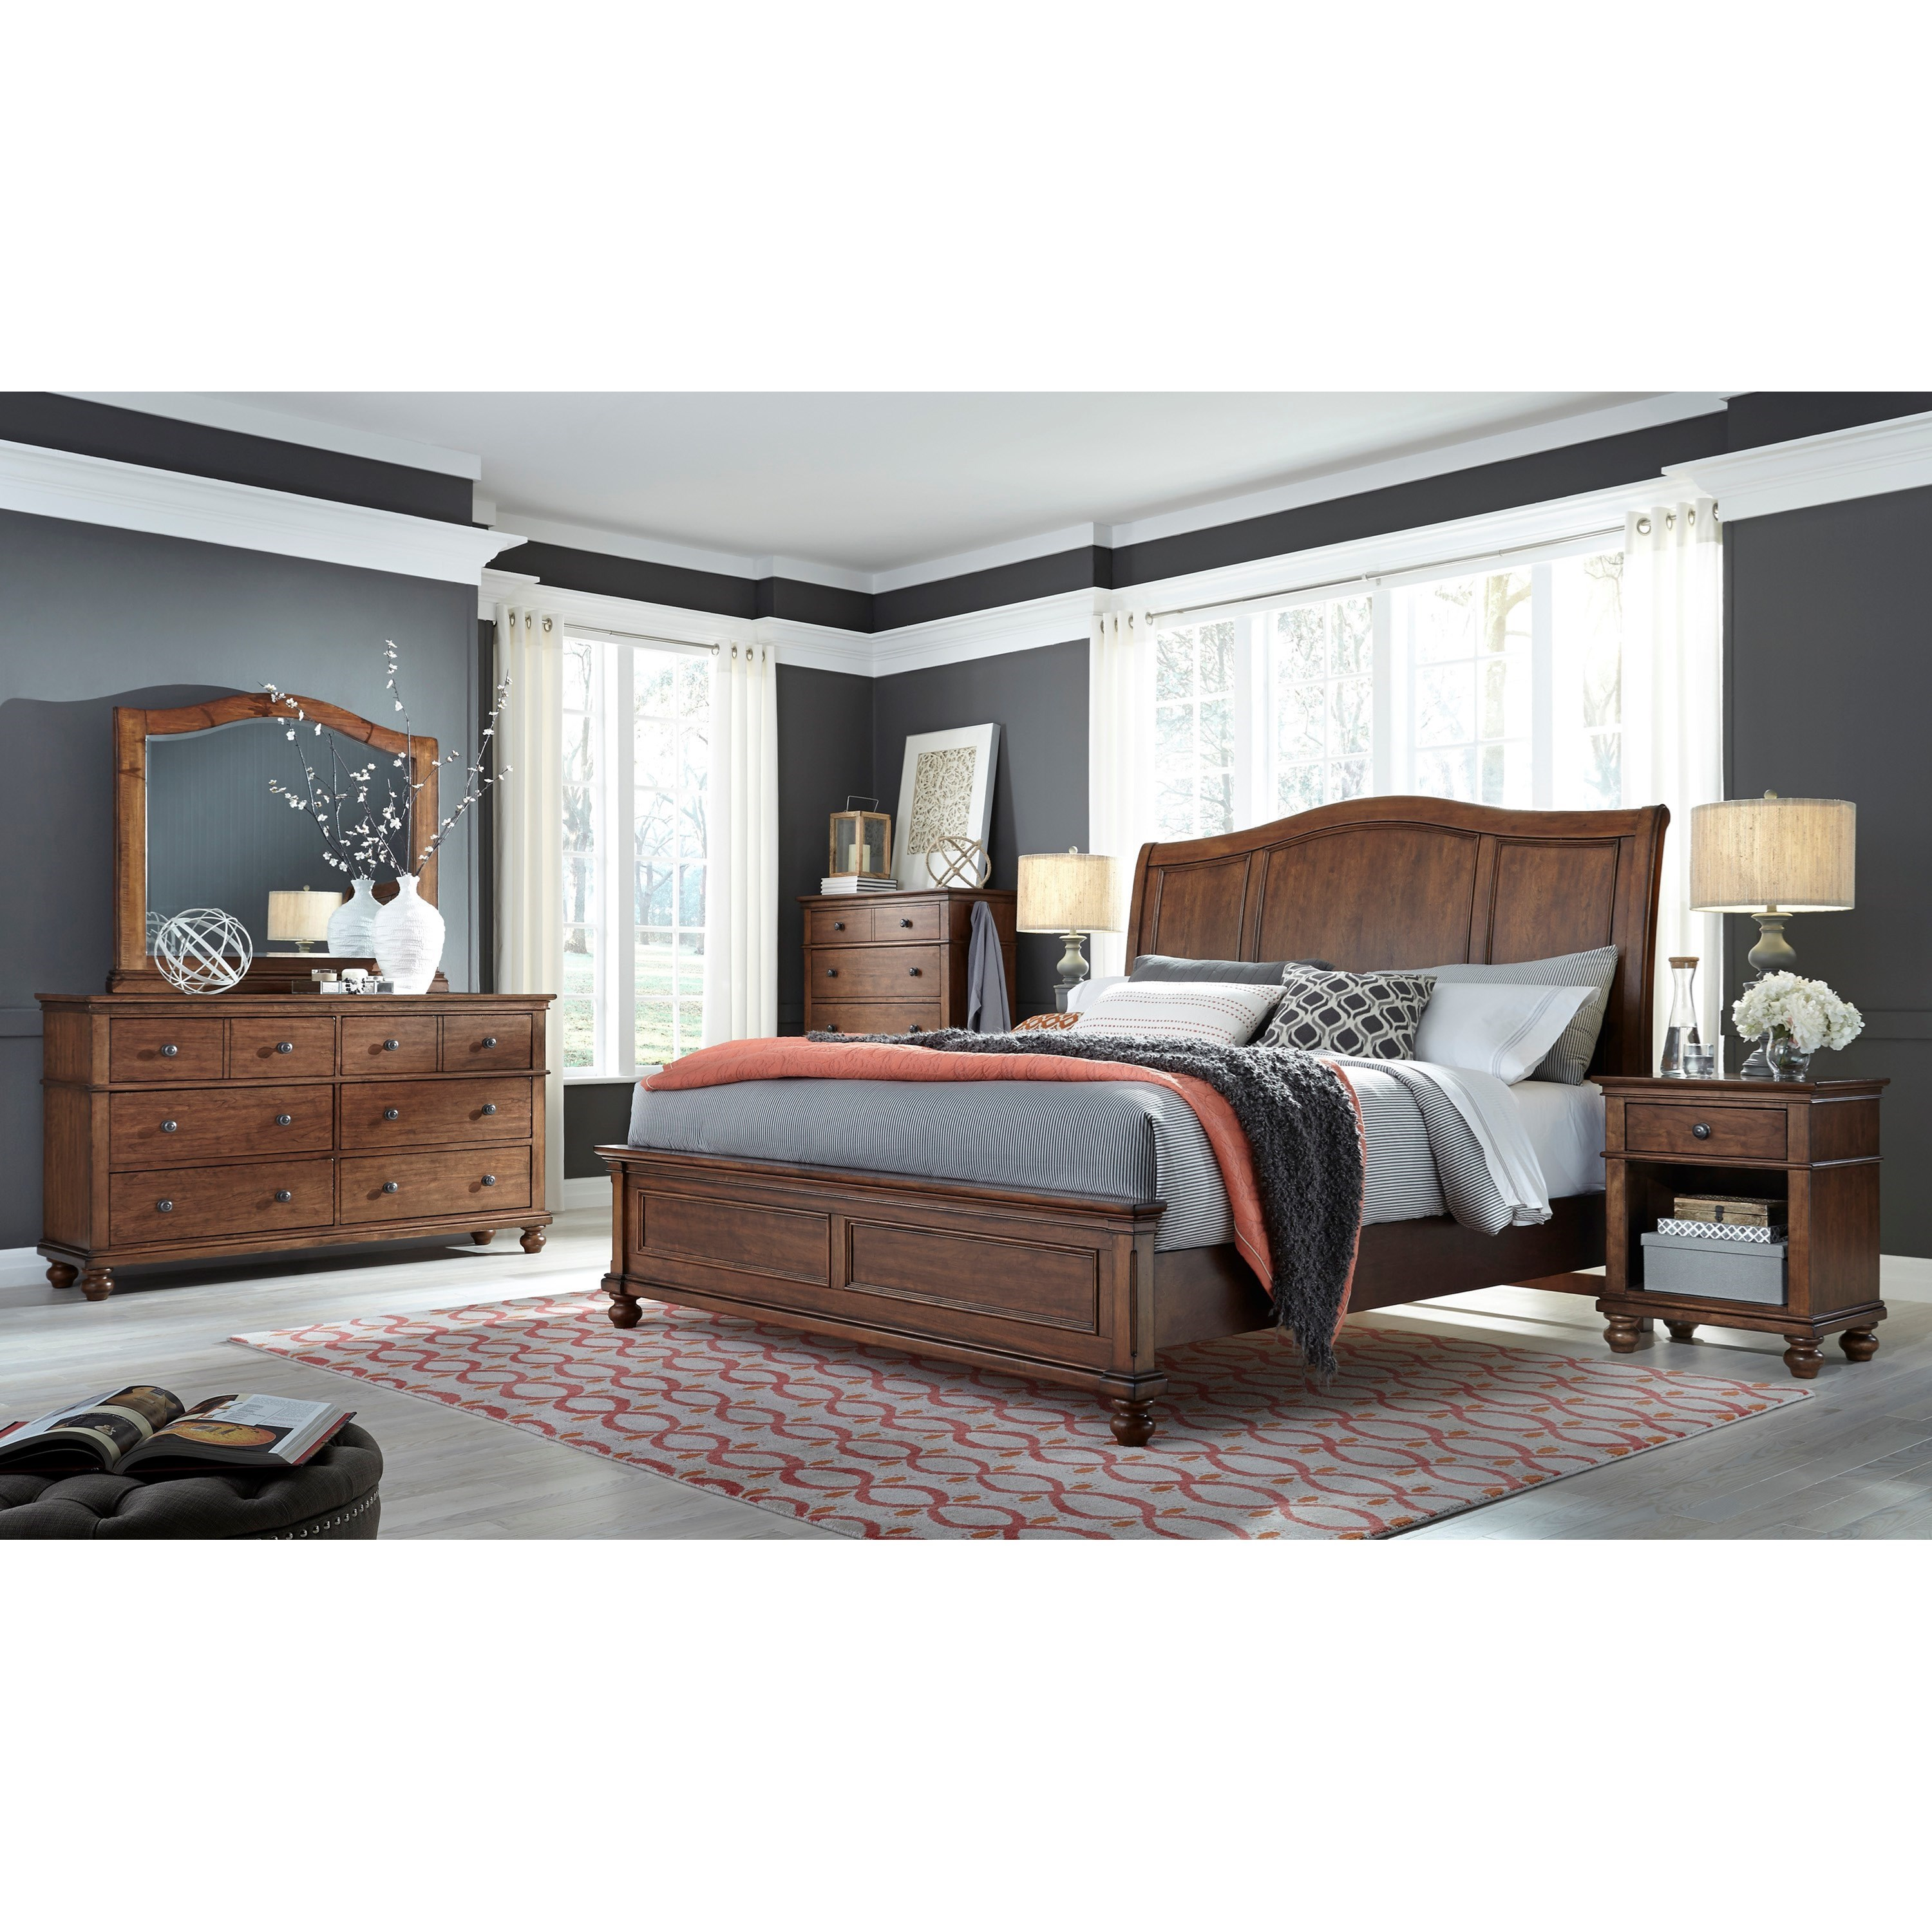 Oxford King Bedroom Group by Aspenhome at Belfort Furniture